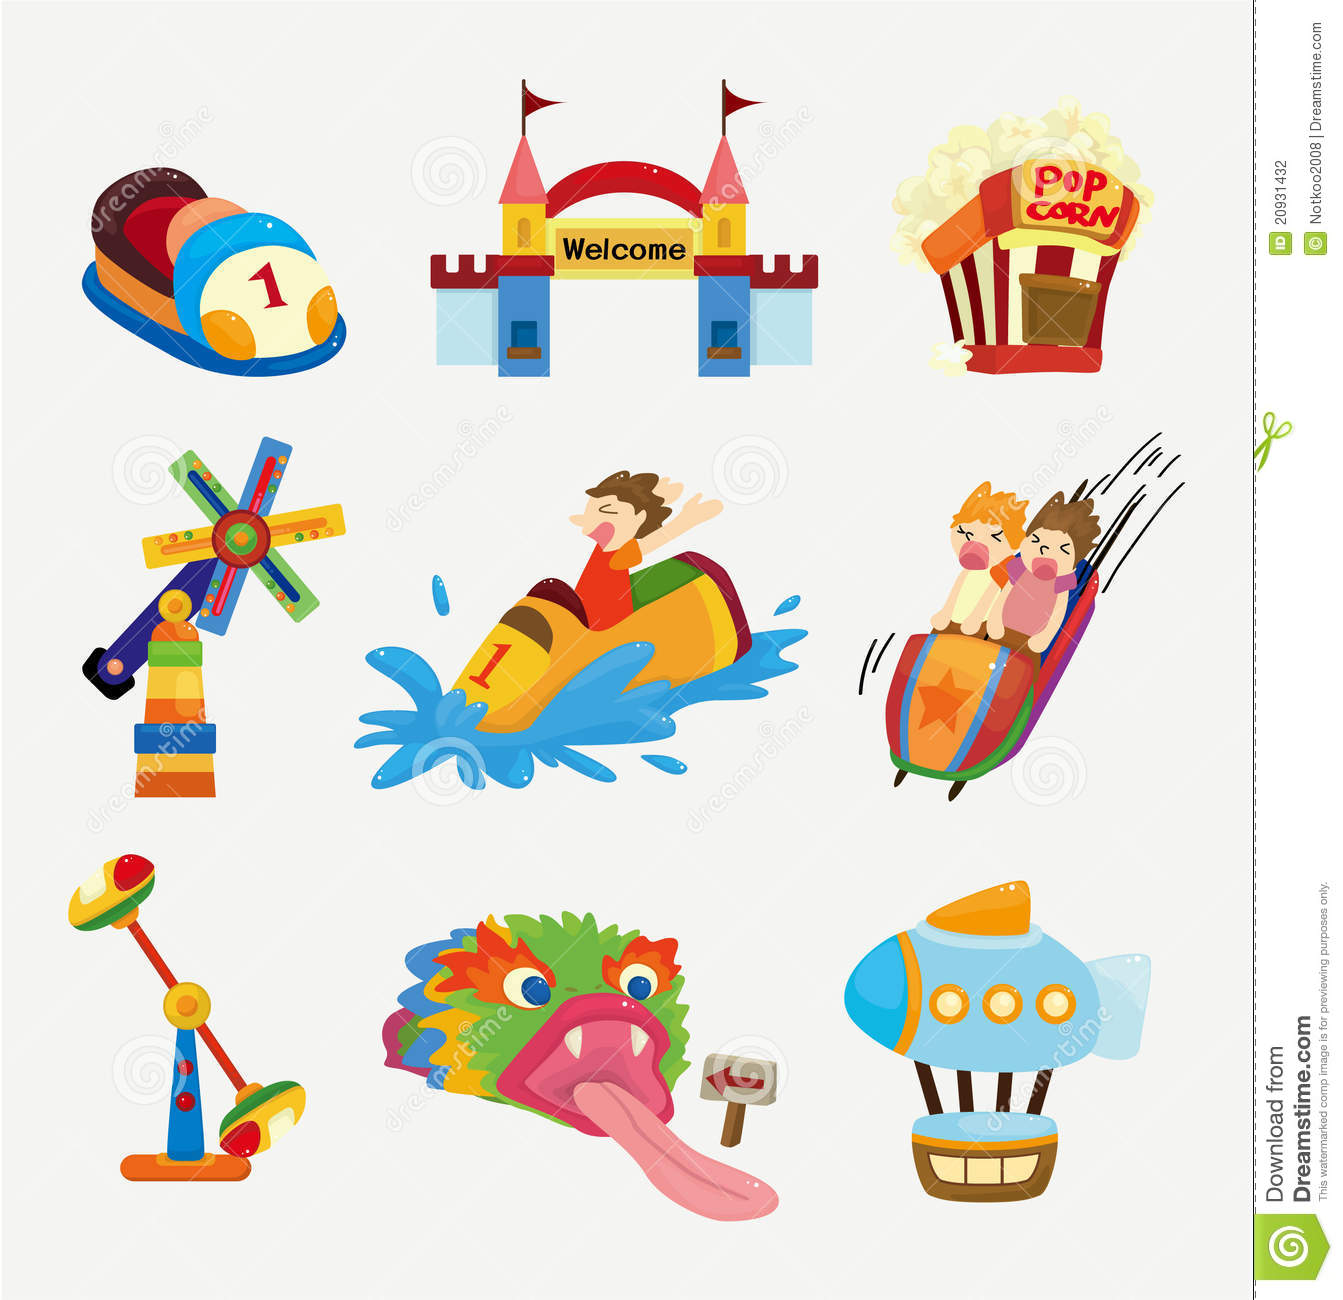 Cartoon Playground Icons Stock Vector Illustration Of